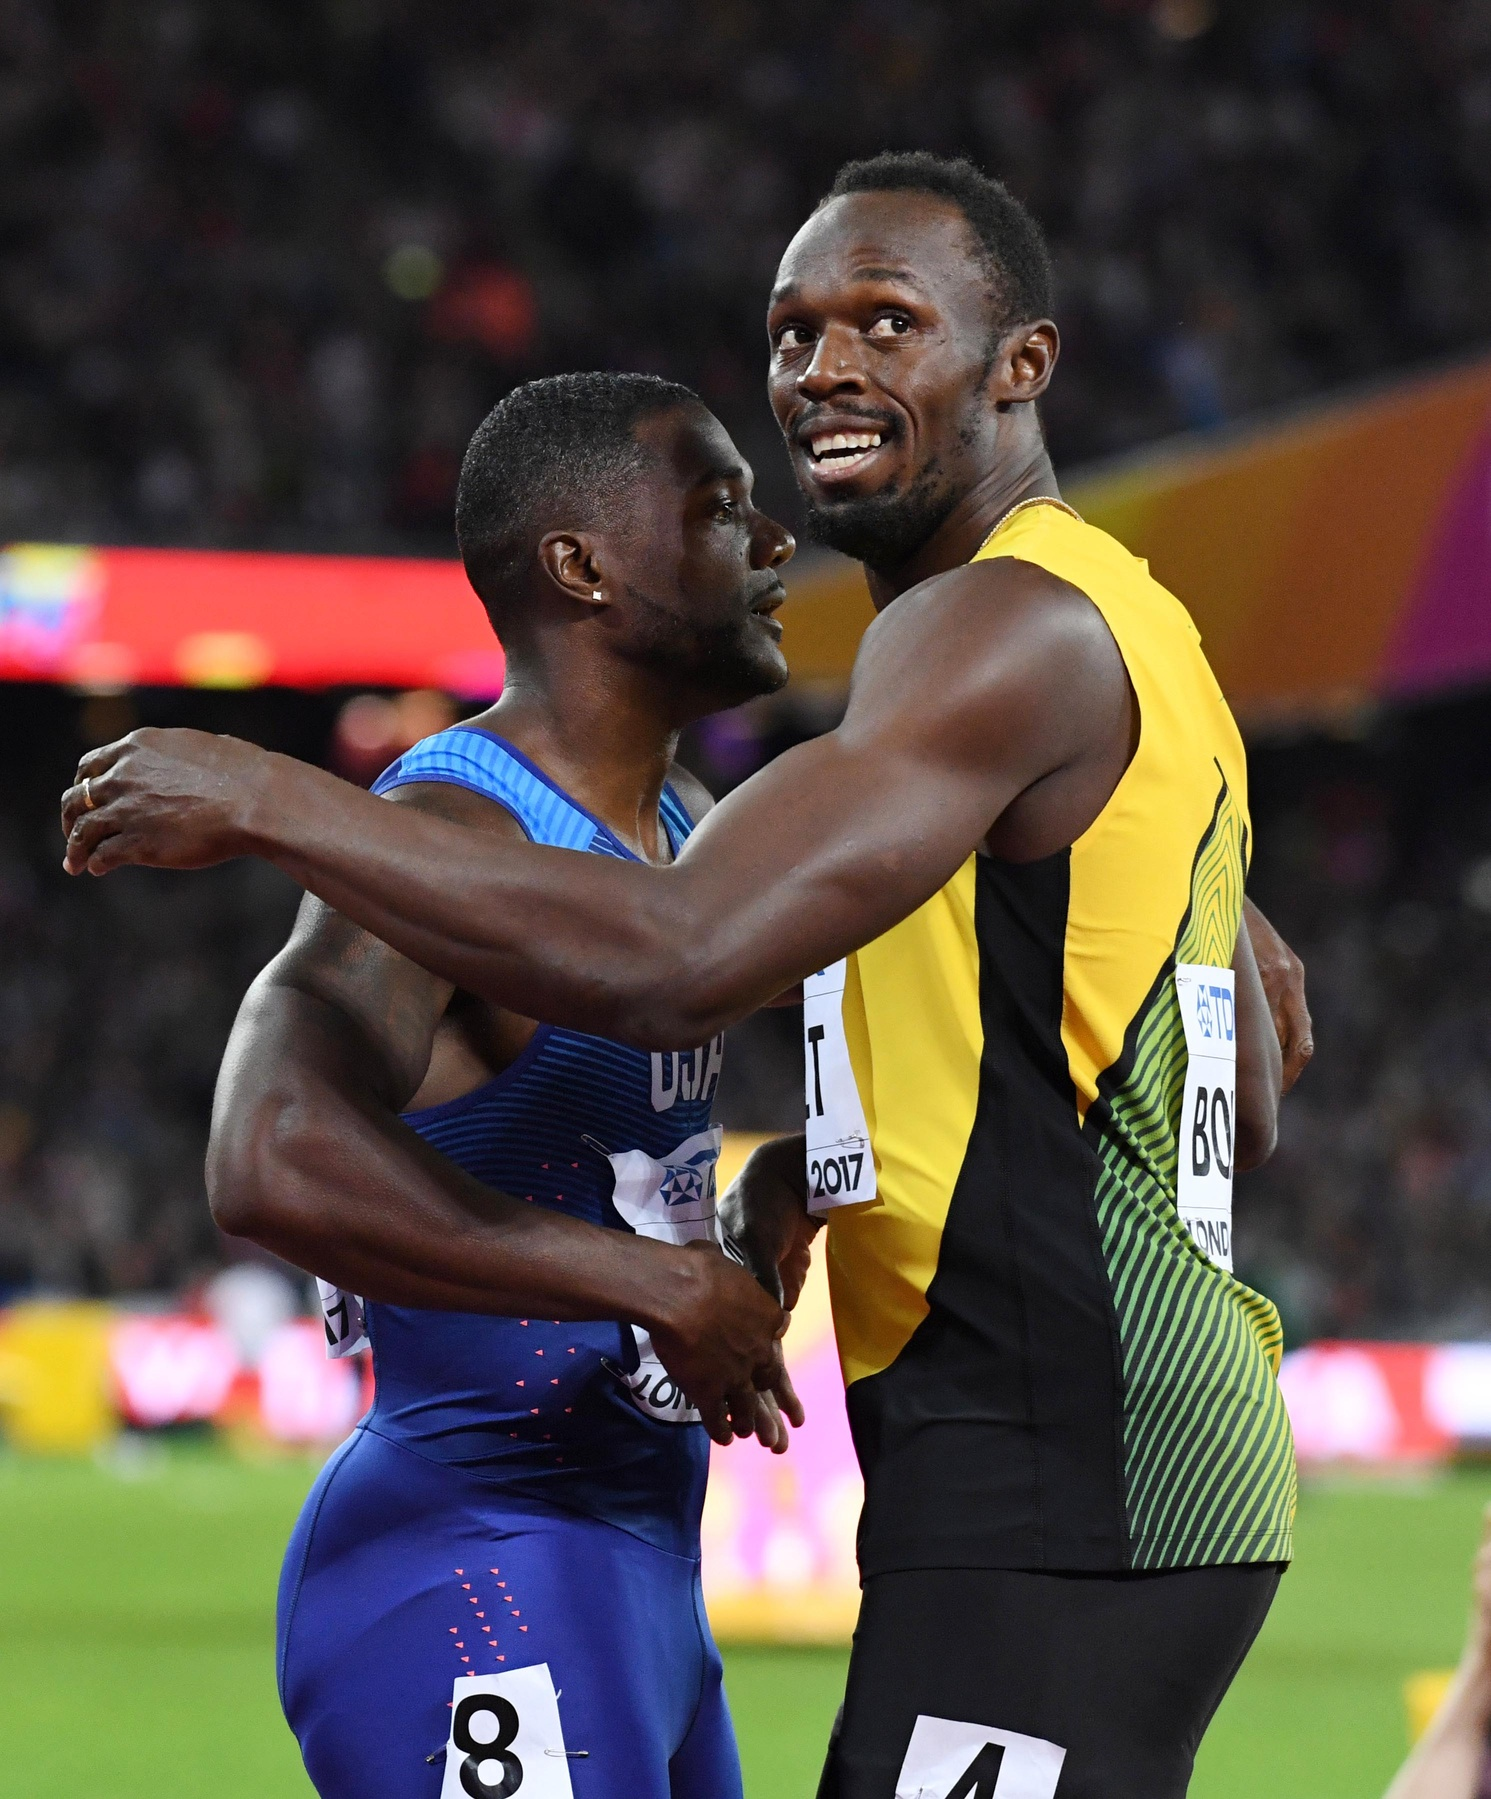 usain-bolt-justin-gatlin-embrace-london